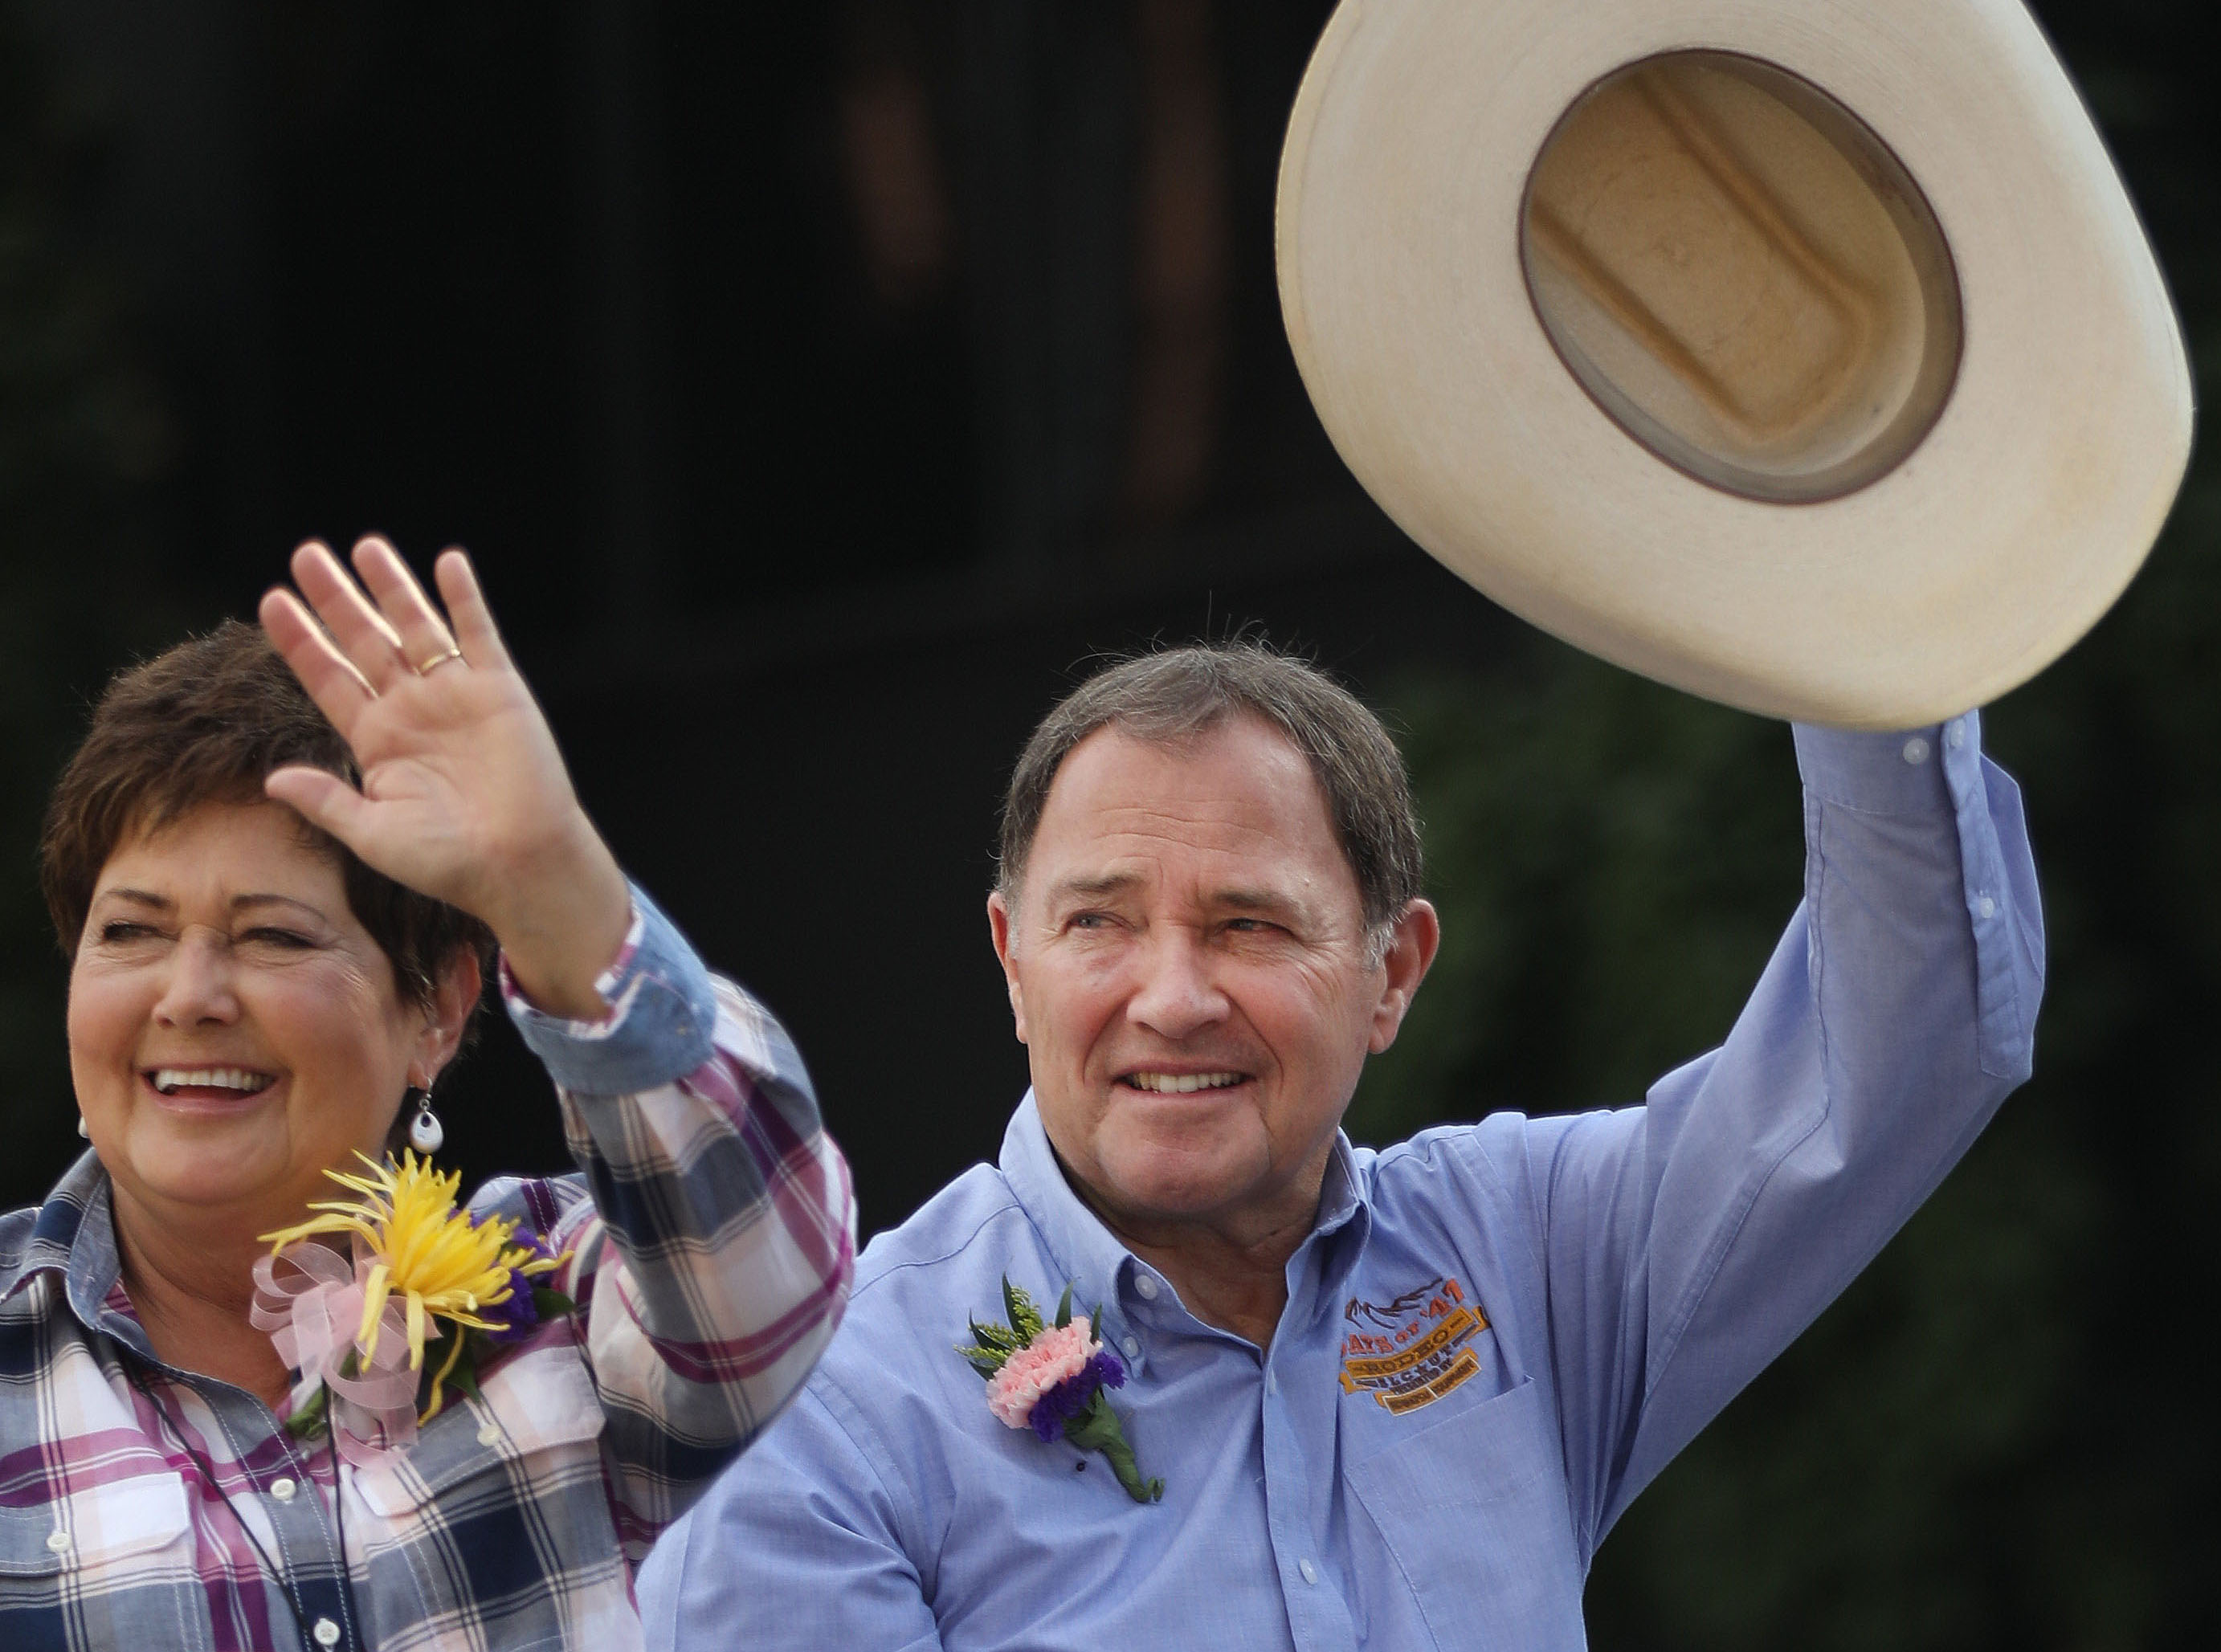 First Lady Jeanette Herbert and Gov. Gary Herbert pass by during the Days of '47 Parade in Salt Lake City on Wednesday, July 24, 2019.